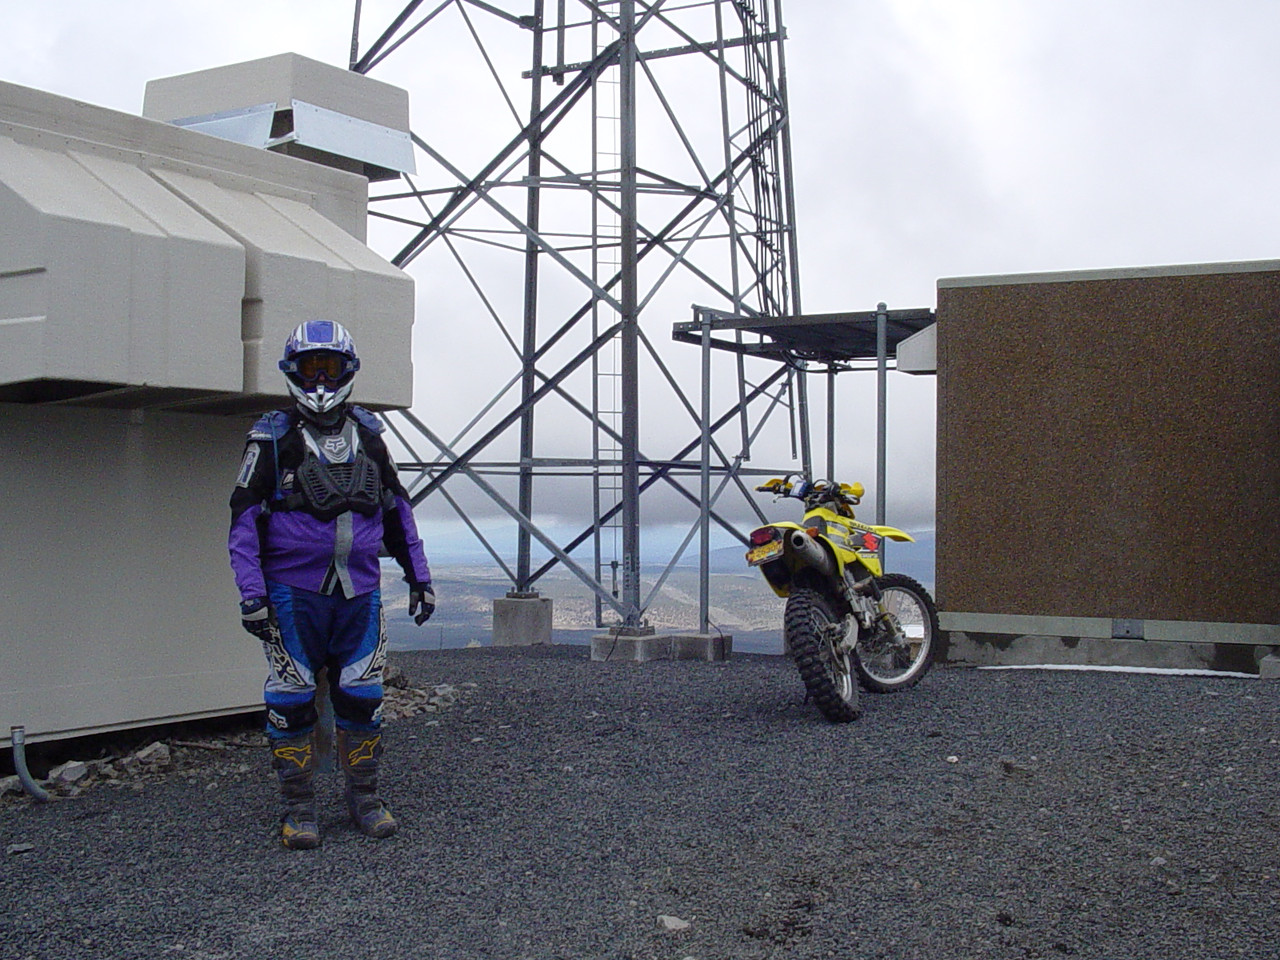 "<font size=""+1"">Tom inspecting the cool microwave towers located here.. </font>"